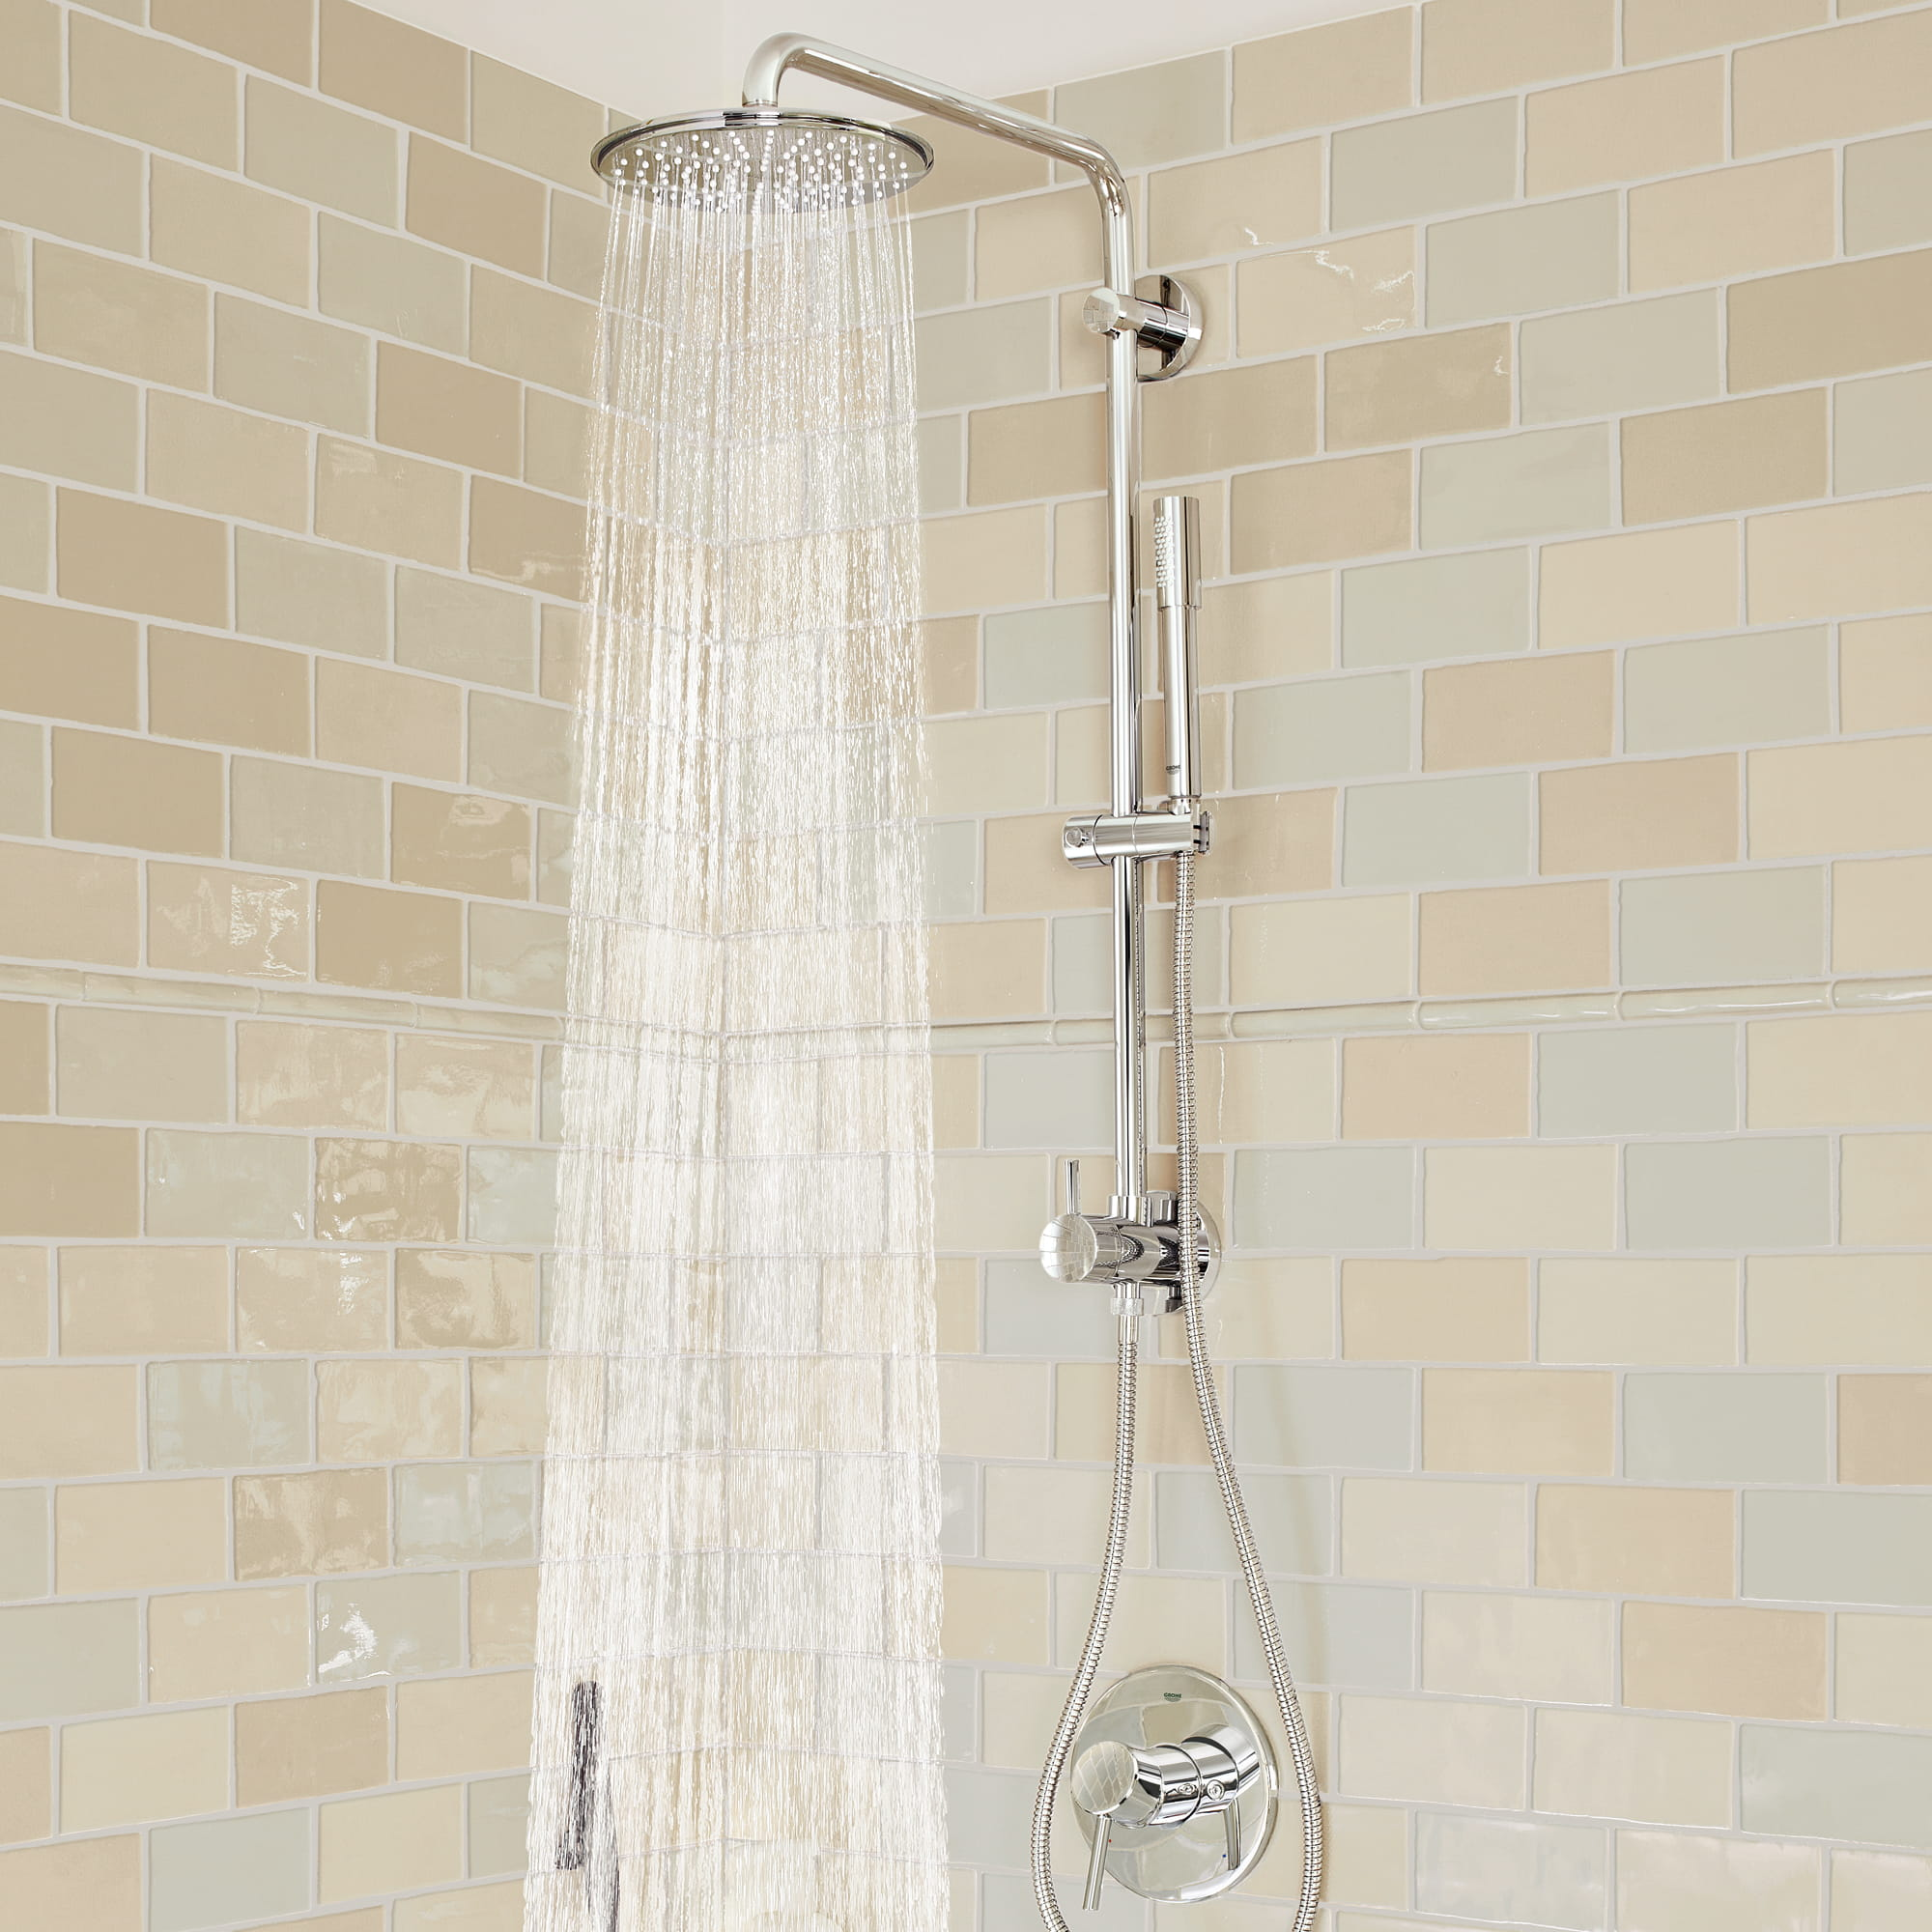 GROHE Retro Fit Shower System